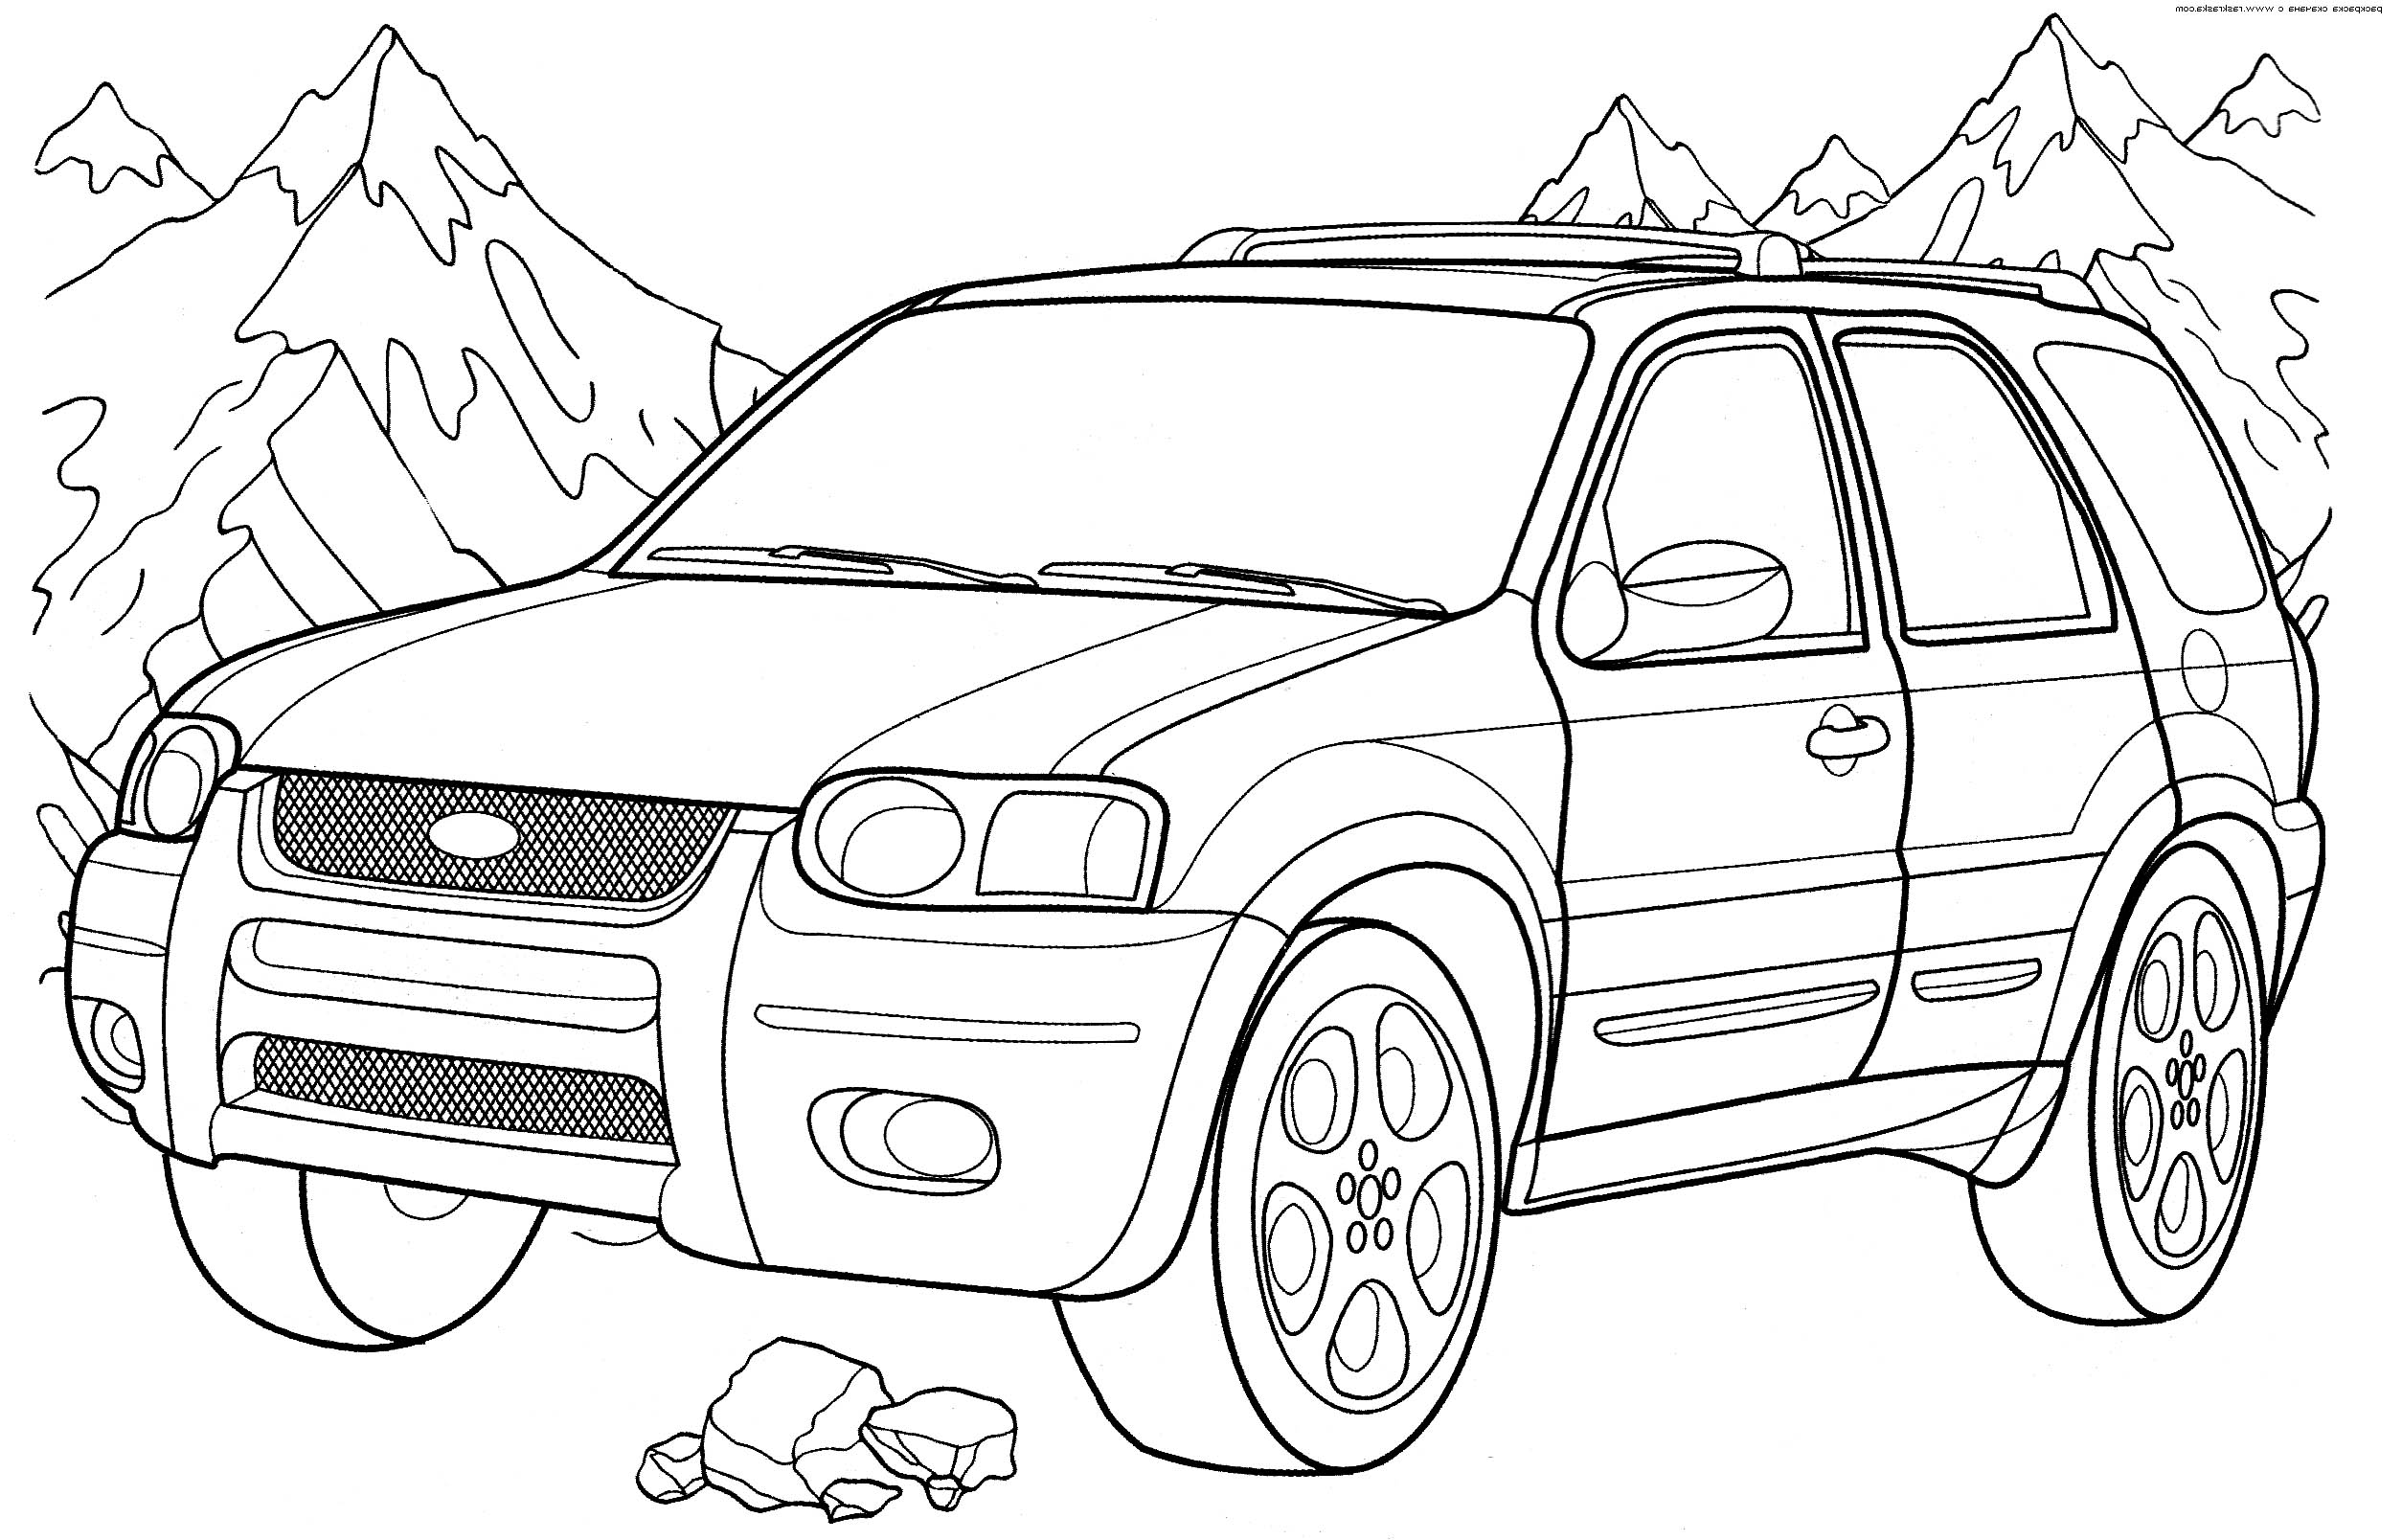 pictures of cars to print and colour cars coloring pages for kids printable marketing plan and print to colour cars pictures of